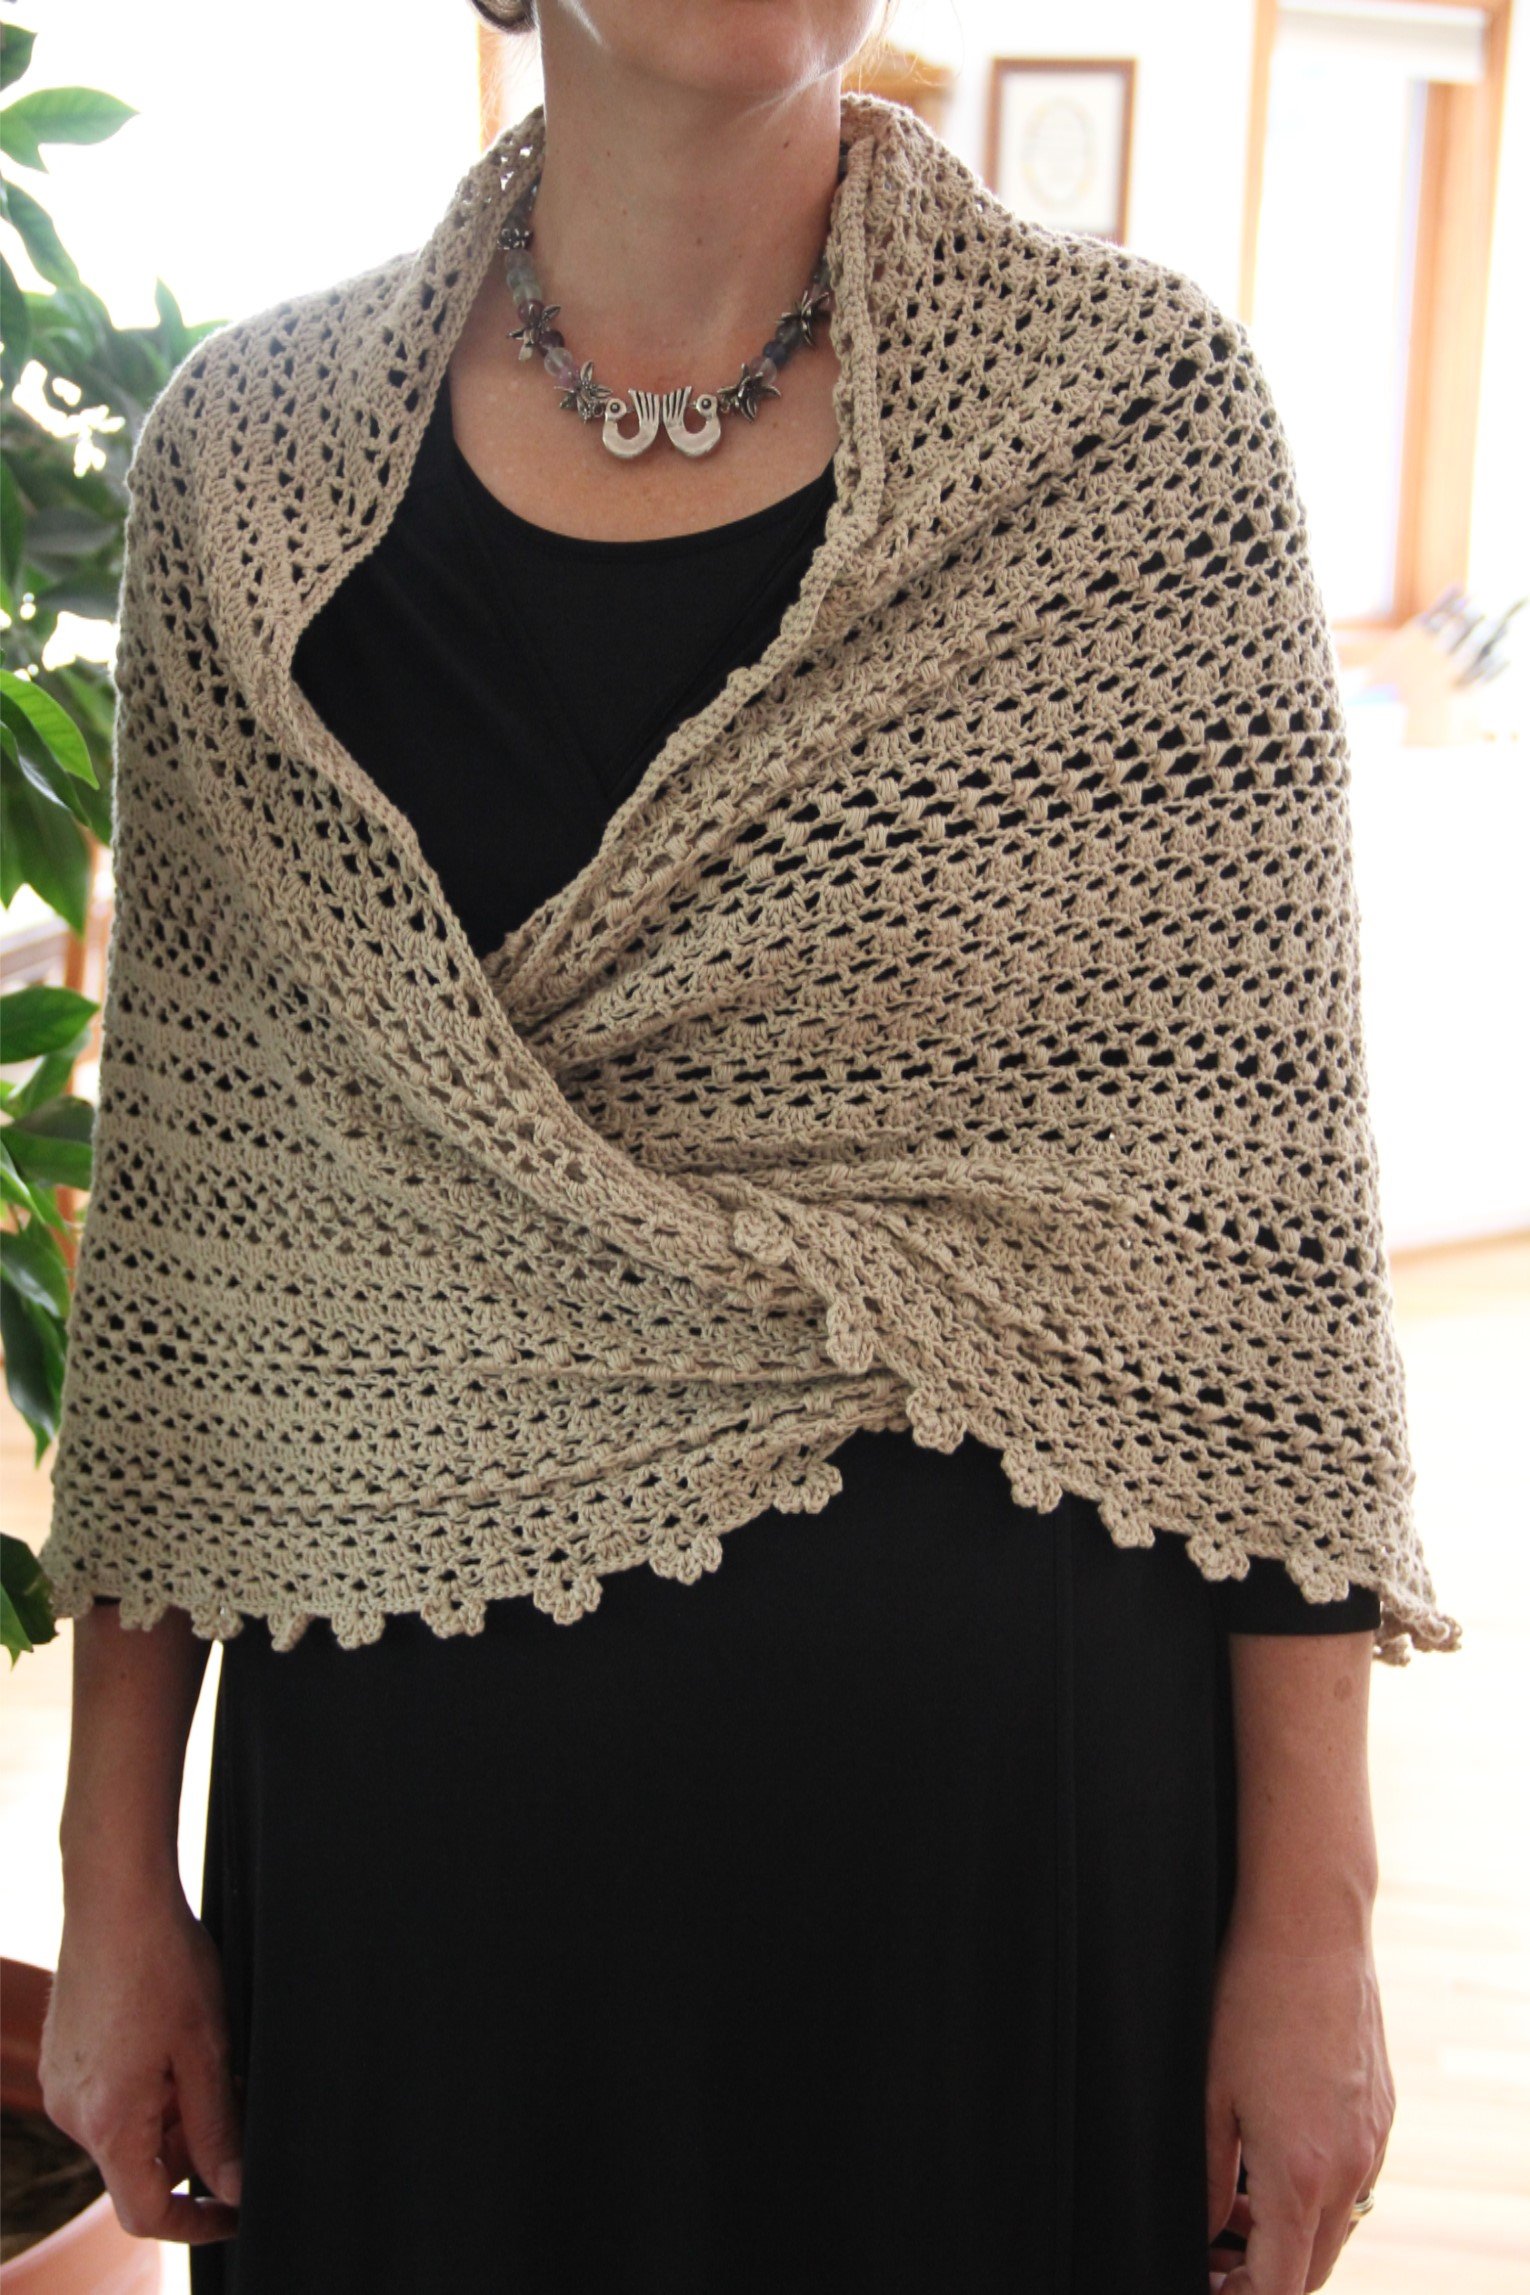 Crochet Wrap : Crochet Shawl Patterns